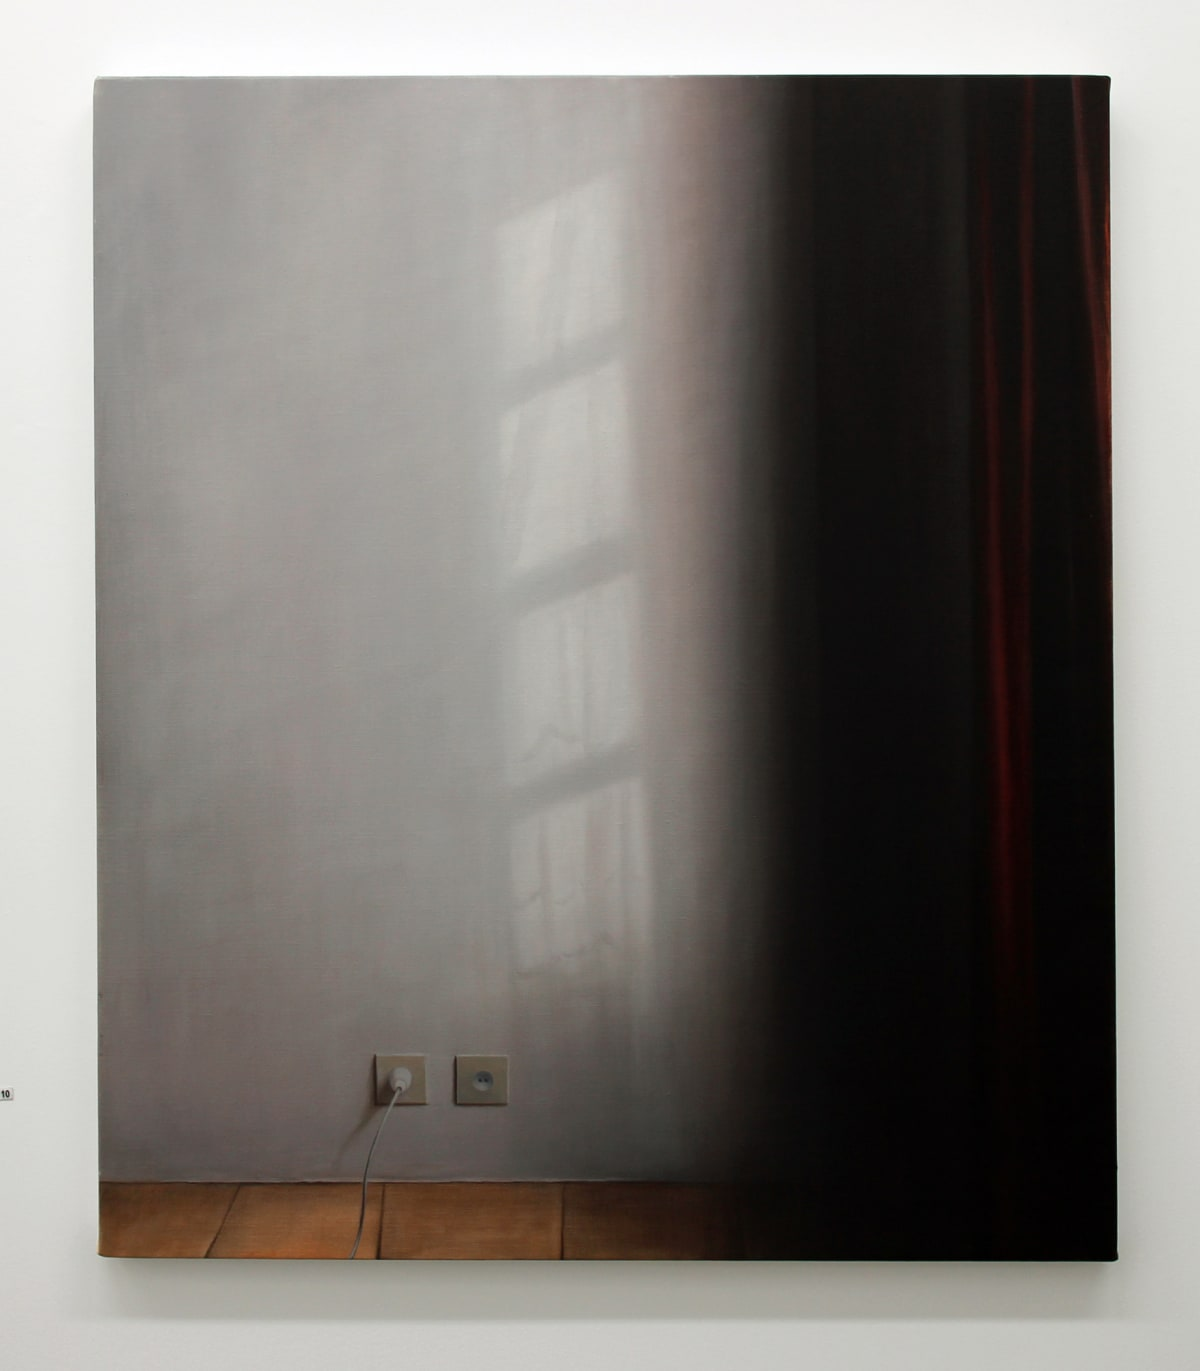 Emily Wolfe Reflected Light, 2013 Oil on linen 37.8 x 32.3 in 96 x 82 cm